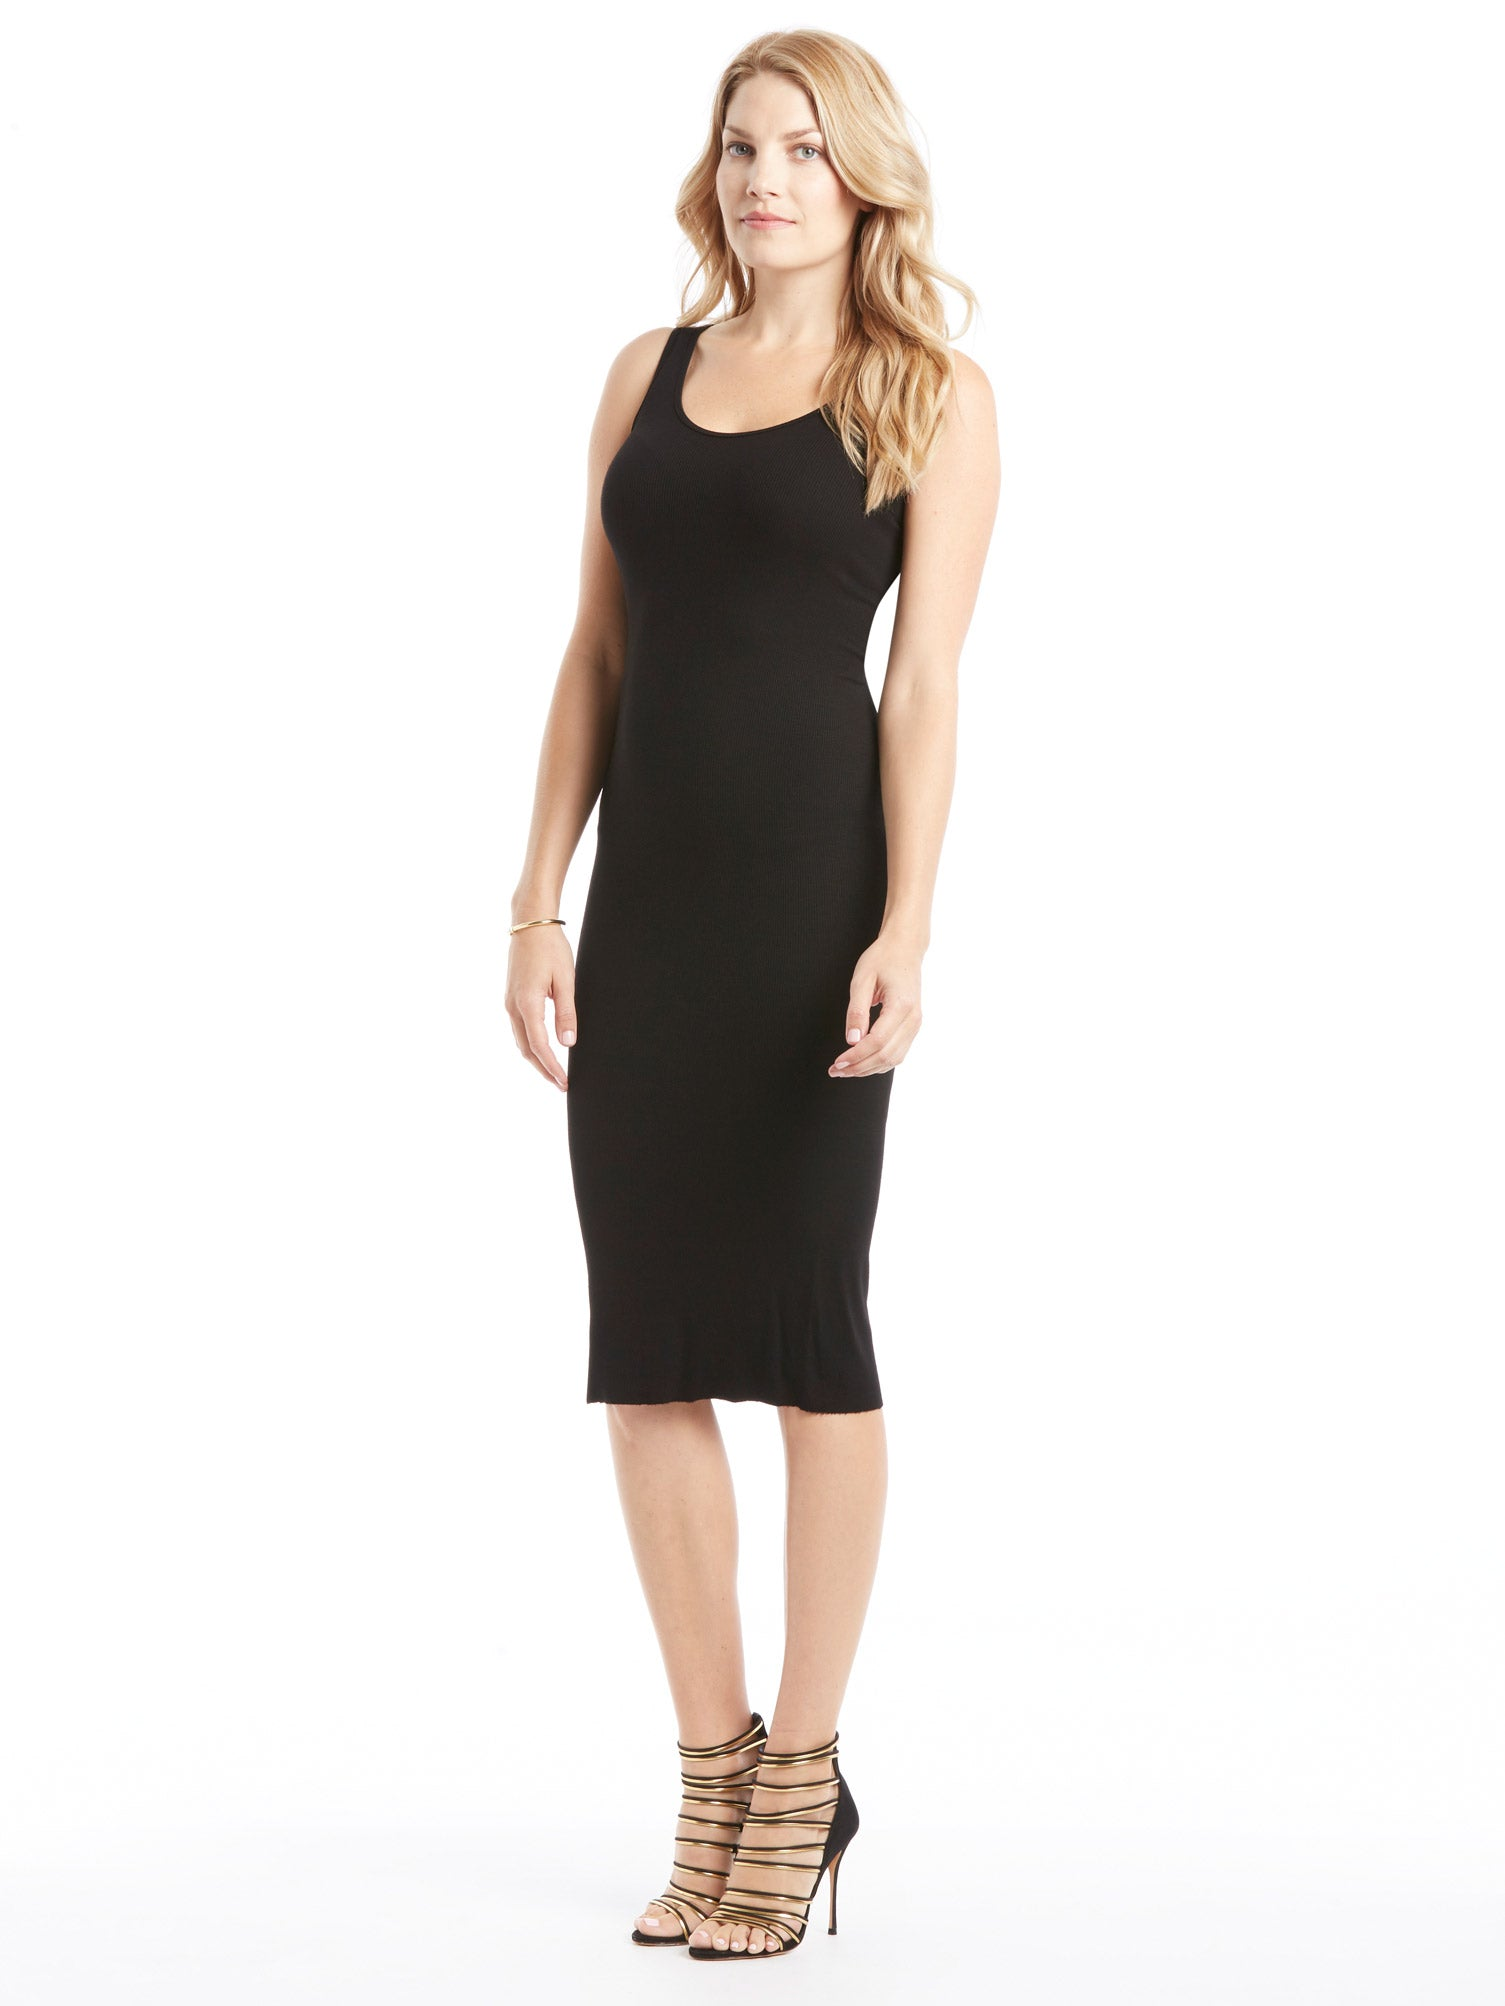 TILDEN | Enza Costa Rib Tank Dress